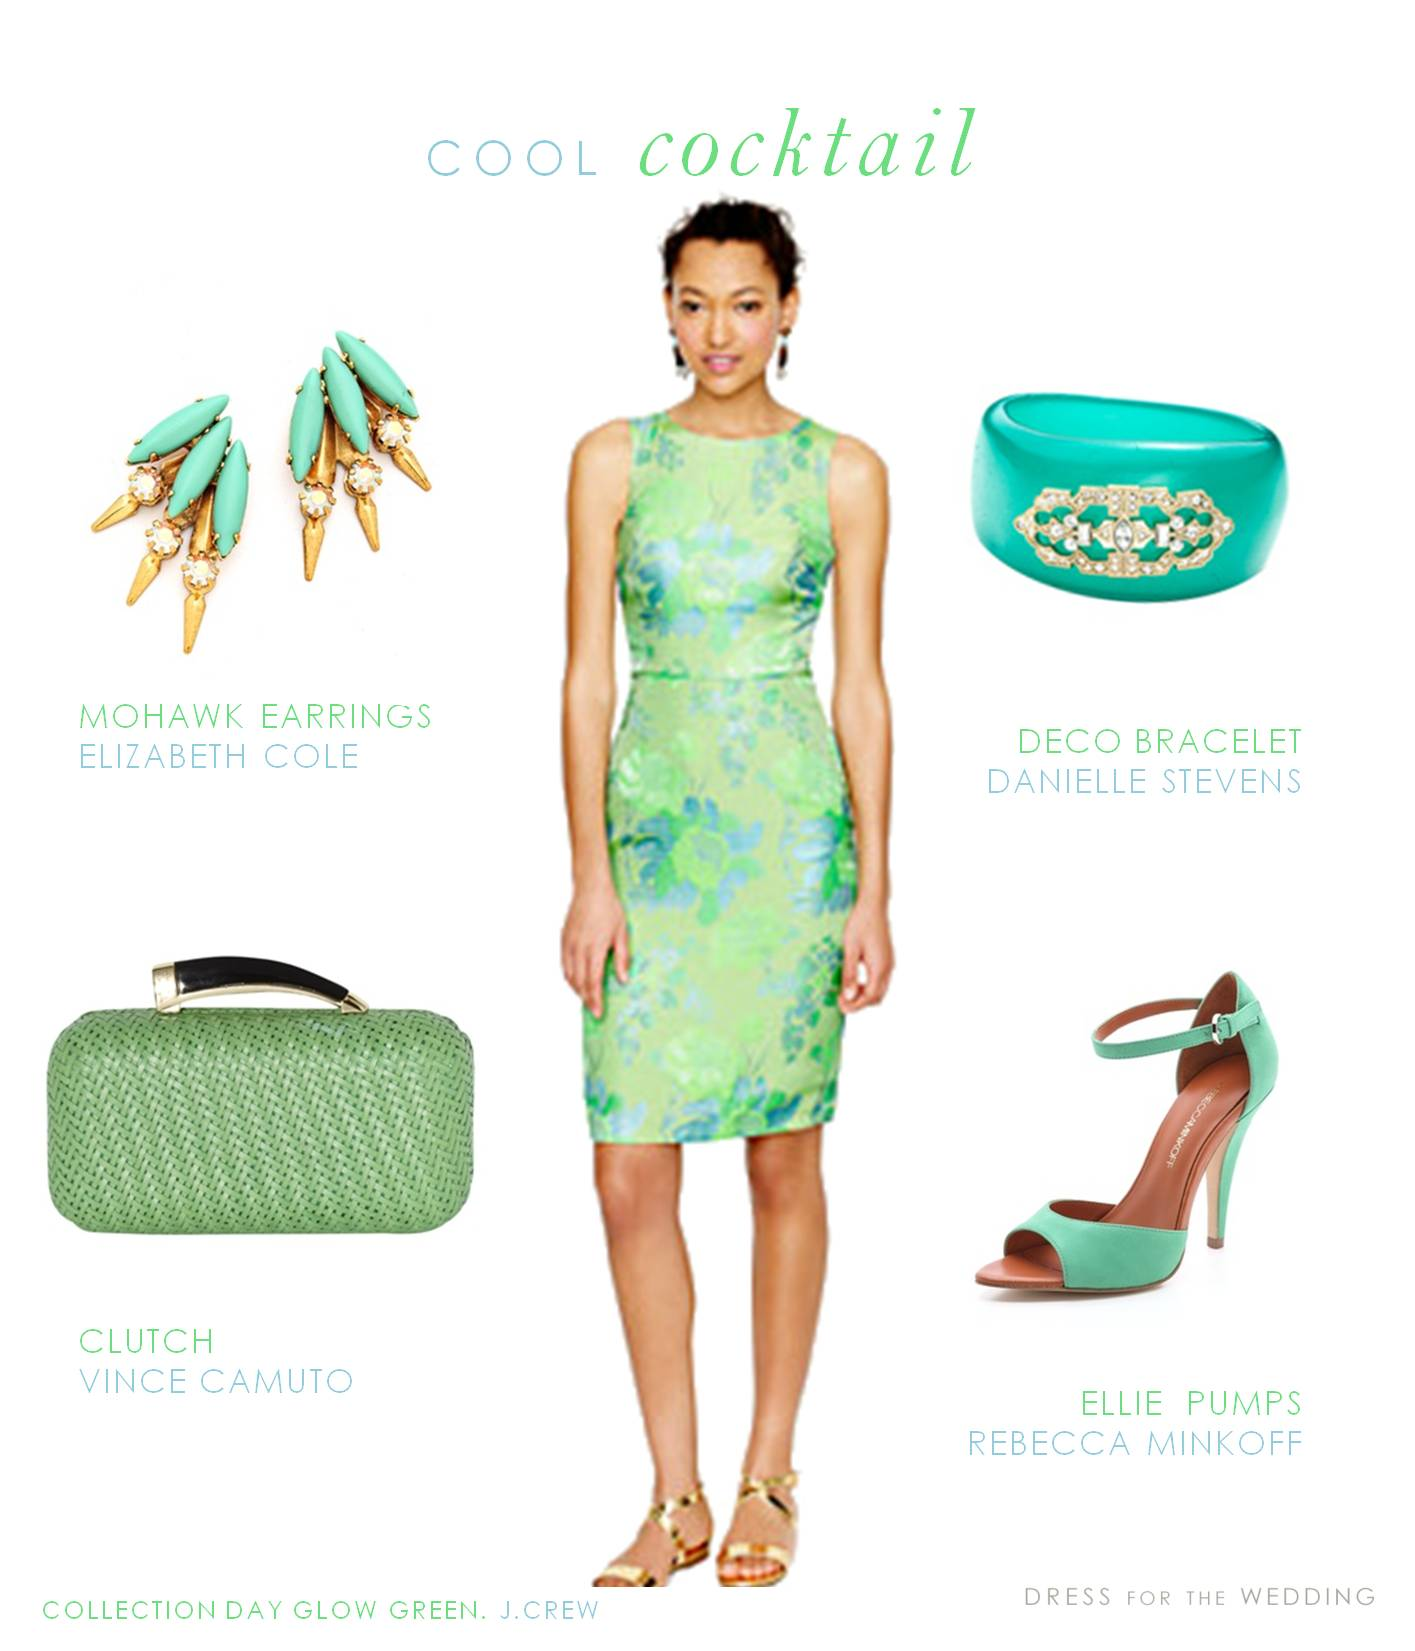 mint and aqua cocktail dress for a wedding guest